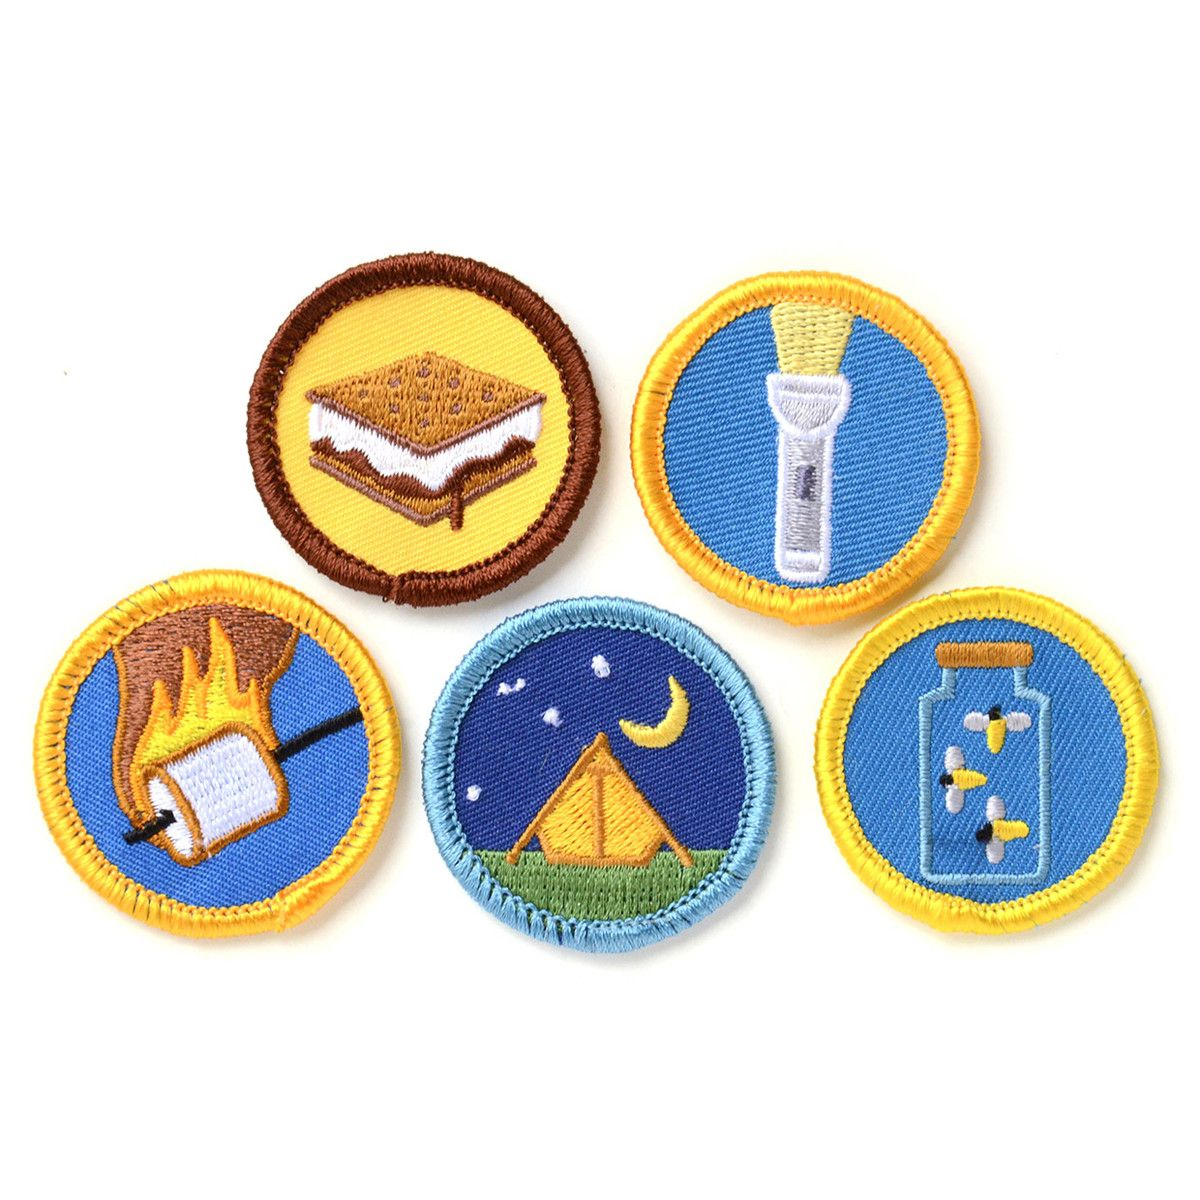 Kids Camping Set Badges These Would Make Great Favors For